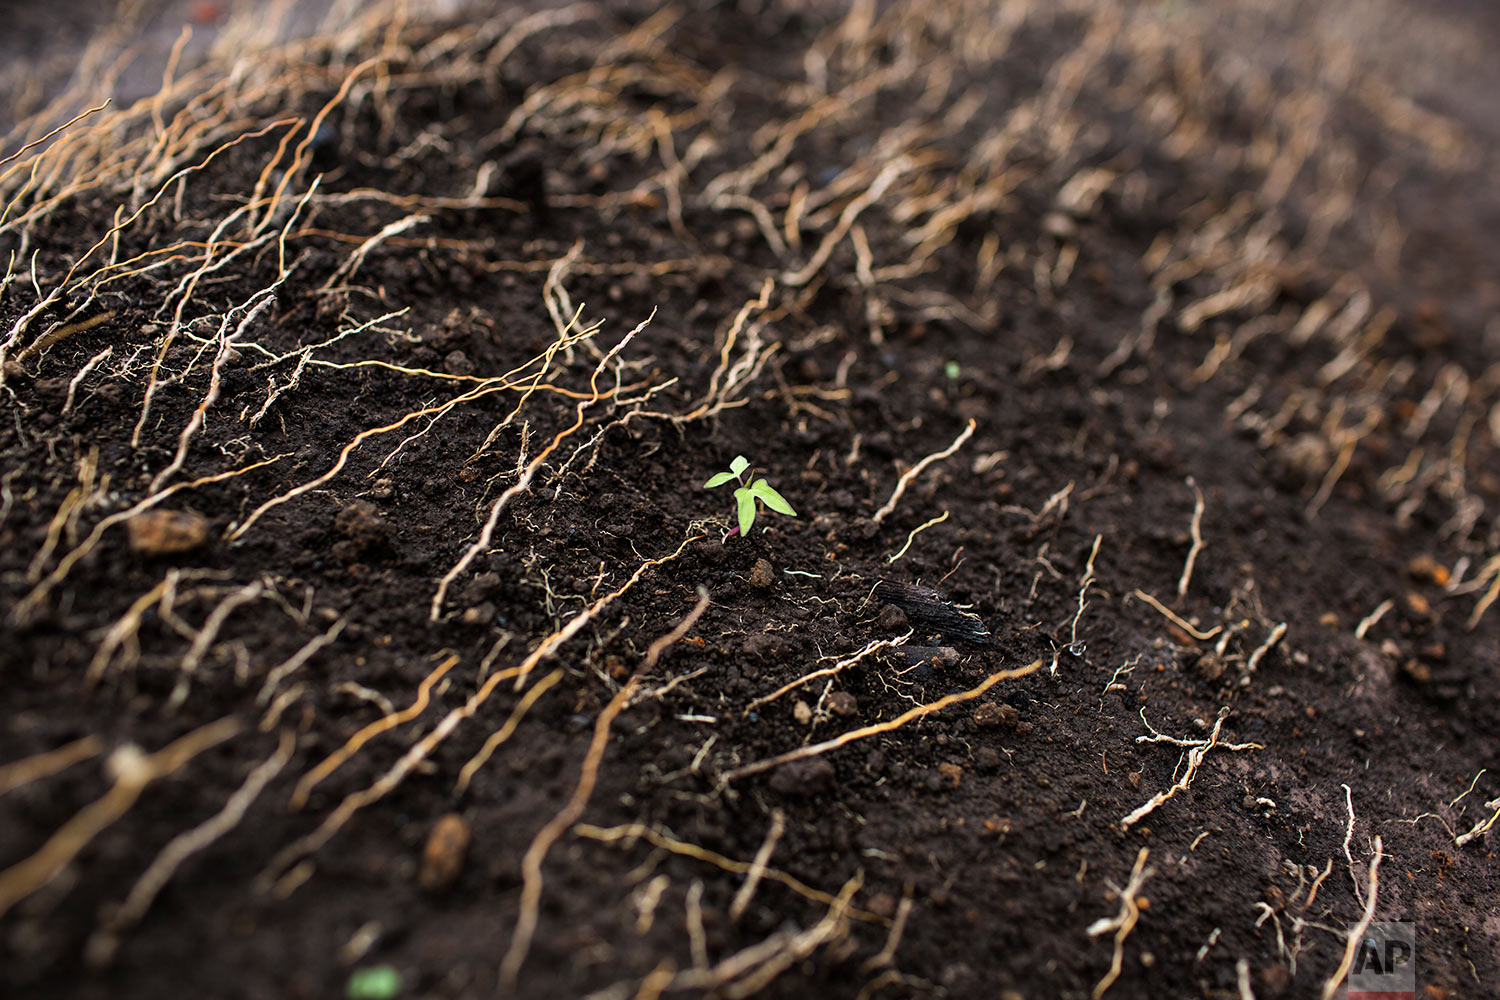 In this June 15, 2018 photo, a plant sprouts from a field charred by the passage of volcanic debris brought by the eruption of the Volcano of Fire in San Miguel Los Lotes, Guatemala. (AP Photo/Rodrigo Abd)